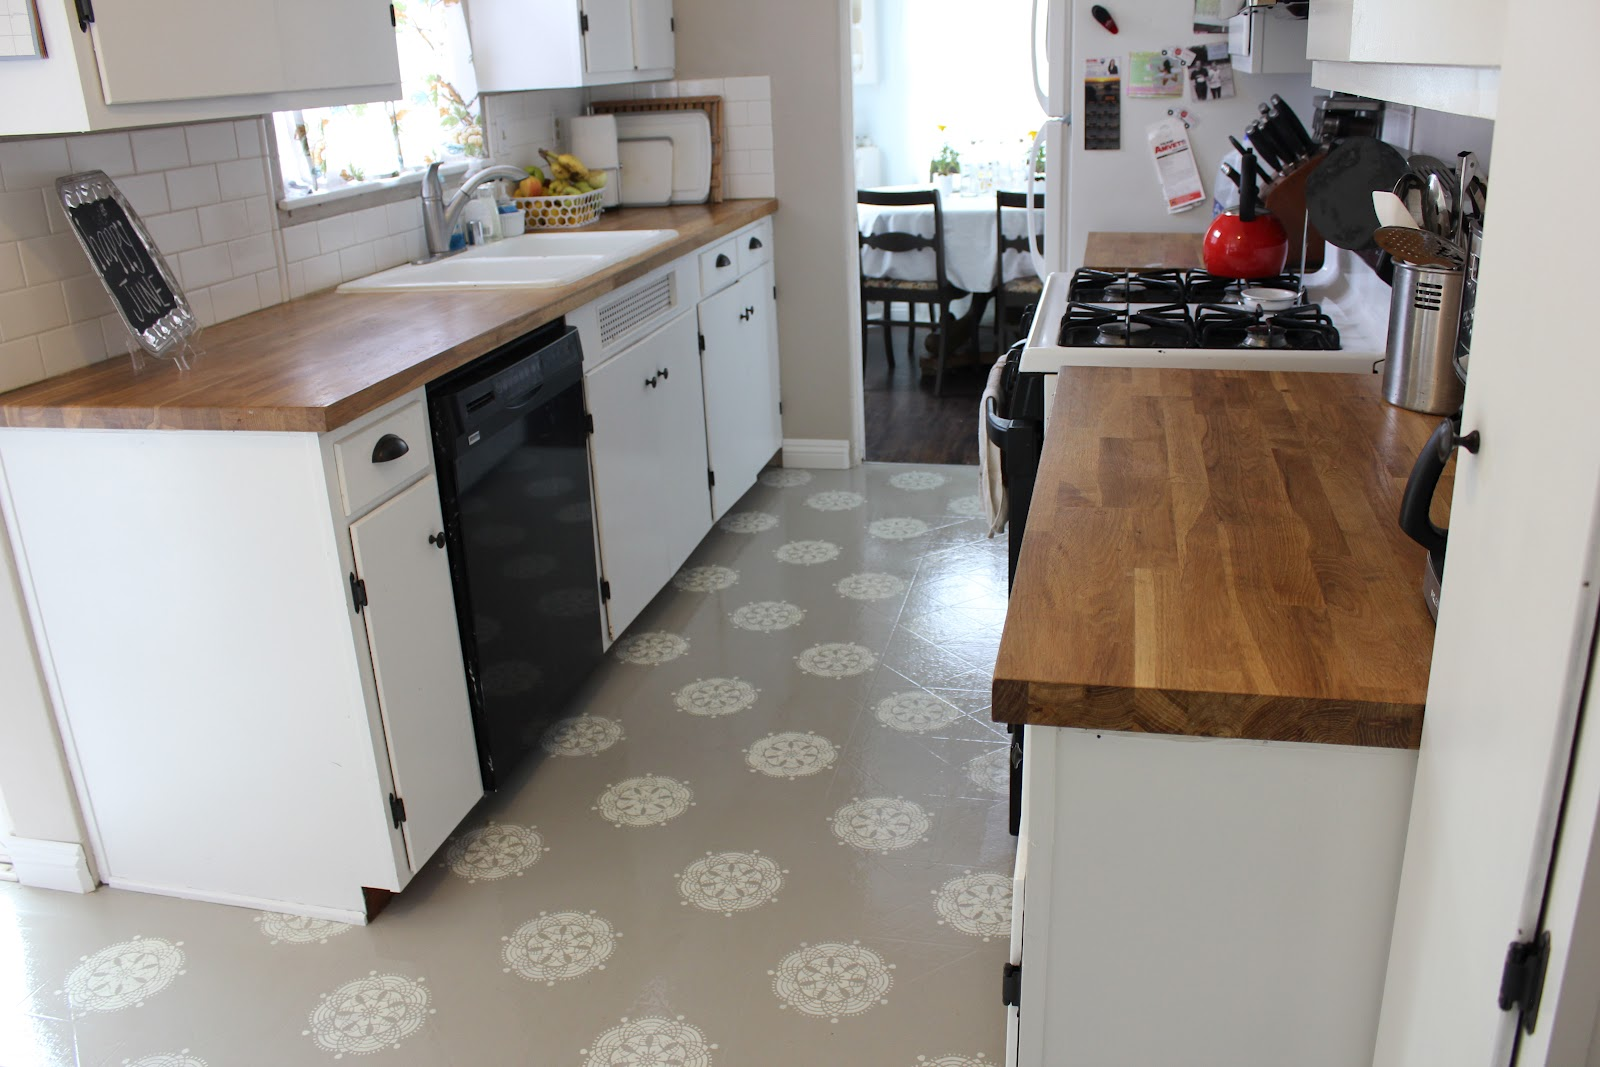 A warm conversation work with what you got painted for Linoleum kitchen flooring